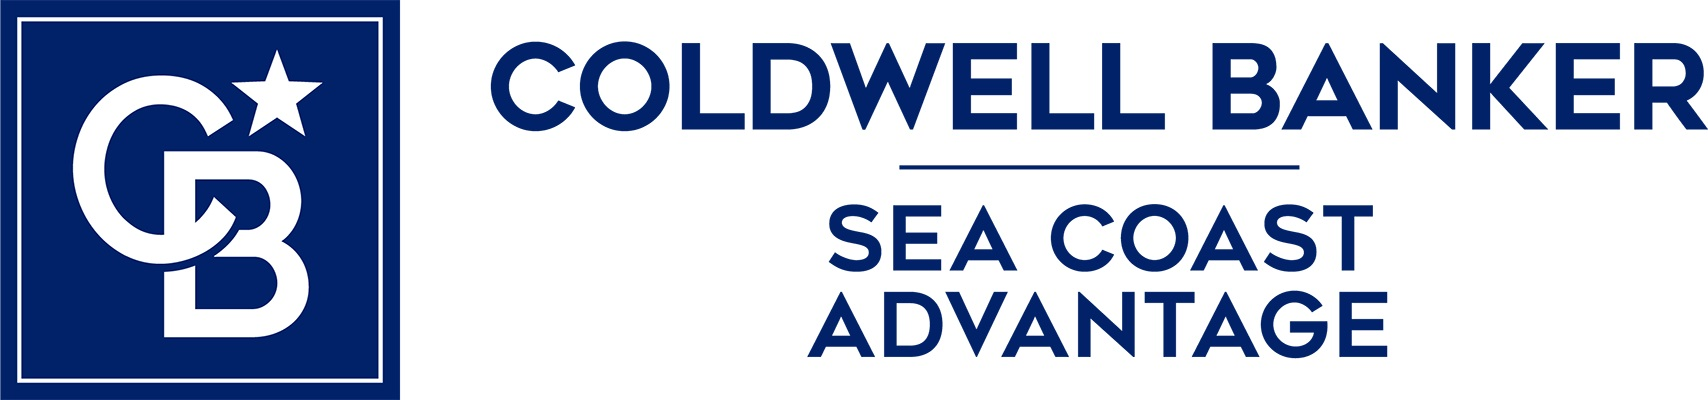 Jocelyn Hopkins - Coldwell Banker Sea Coast Advantage Realty